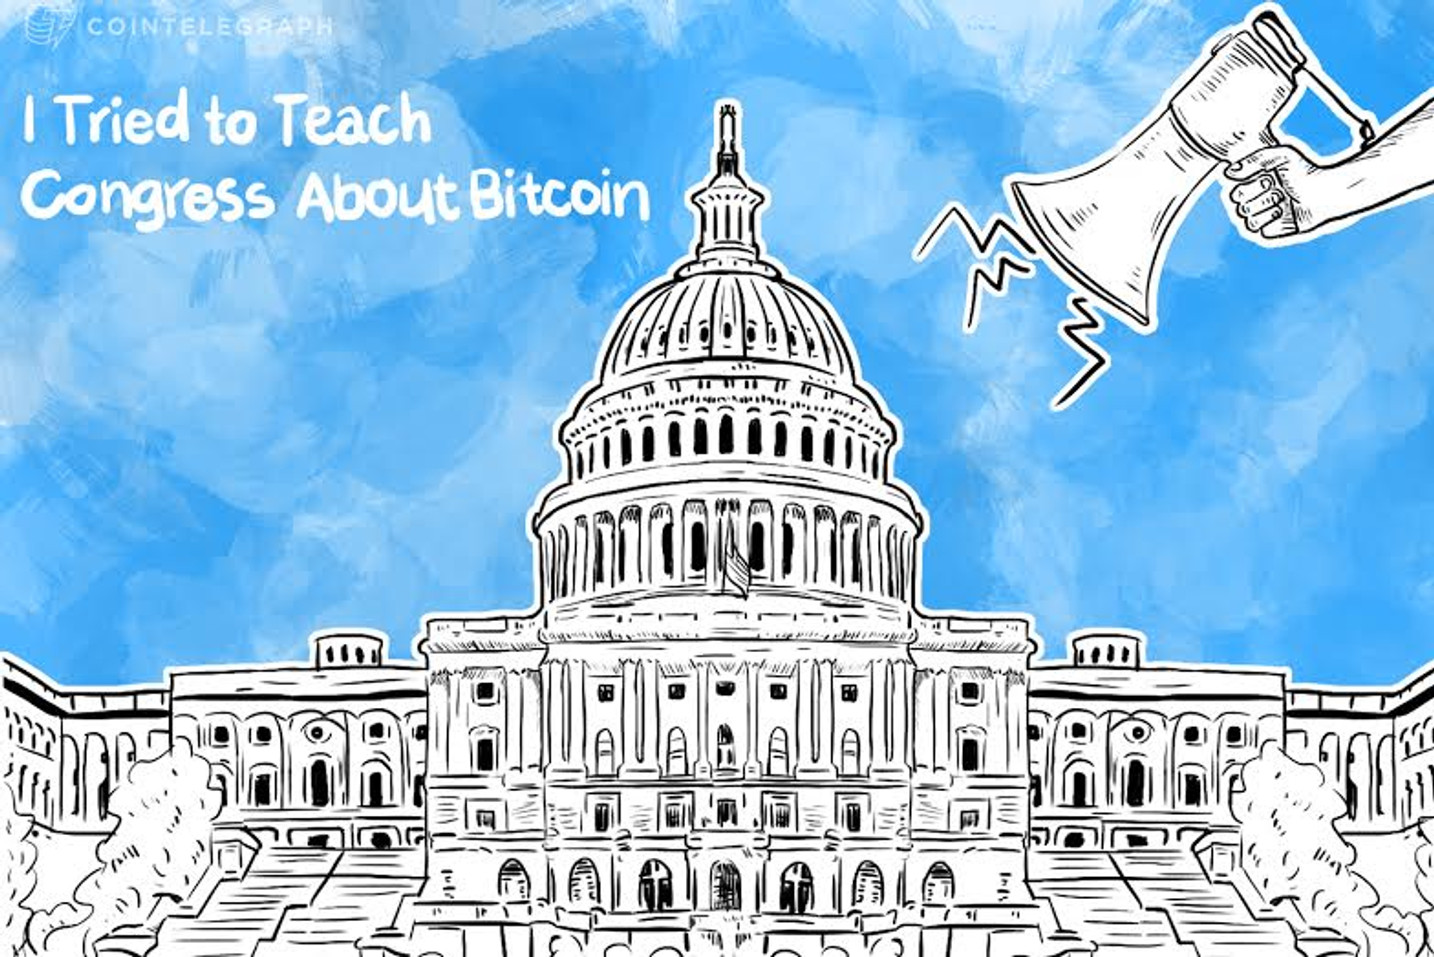 Congressional Bitcoin Education Day: I Tried To Teach Congress About Bitcoin